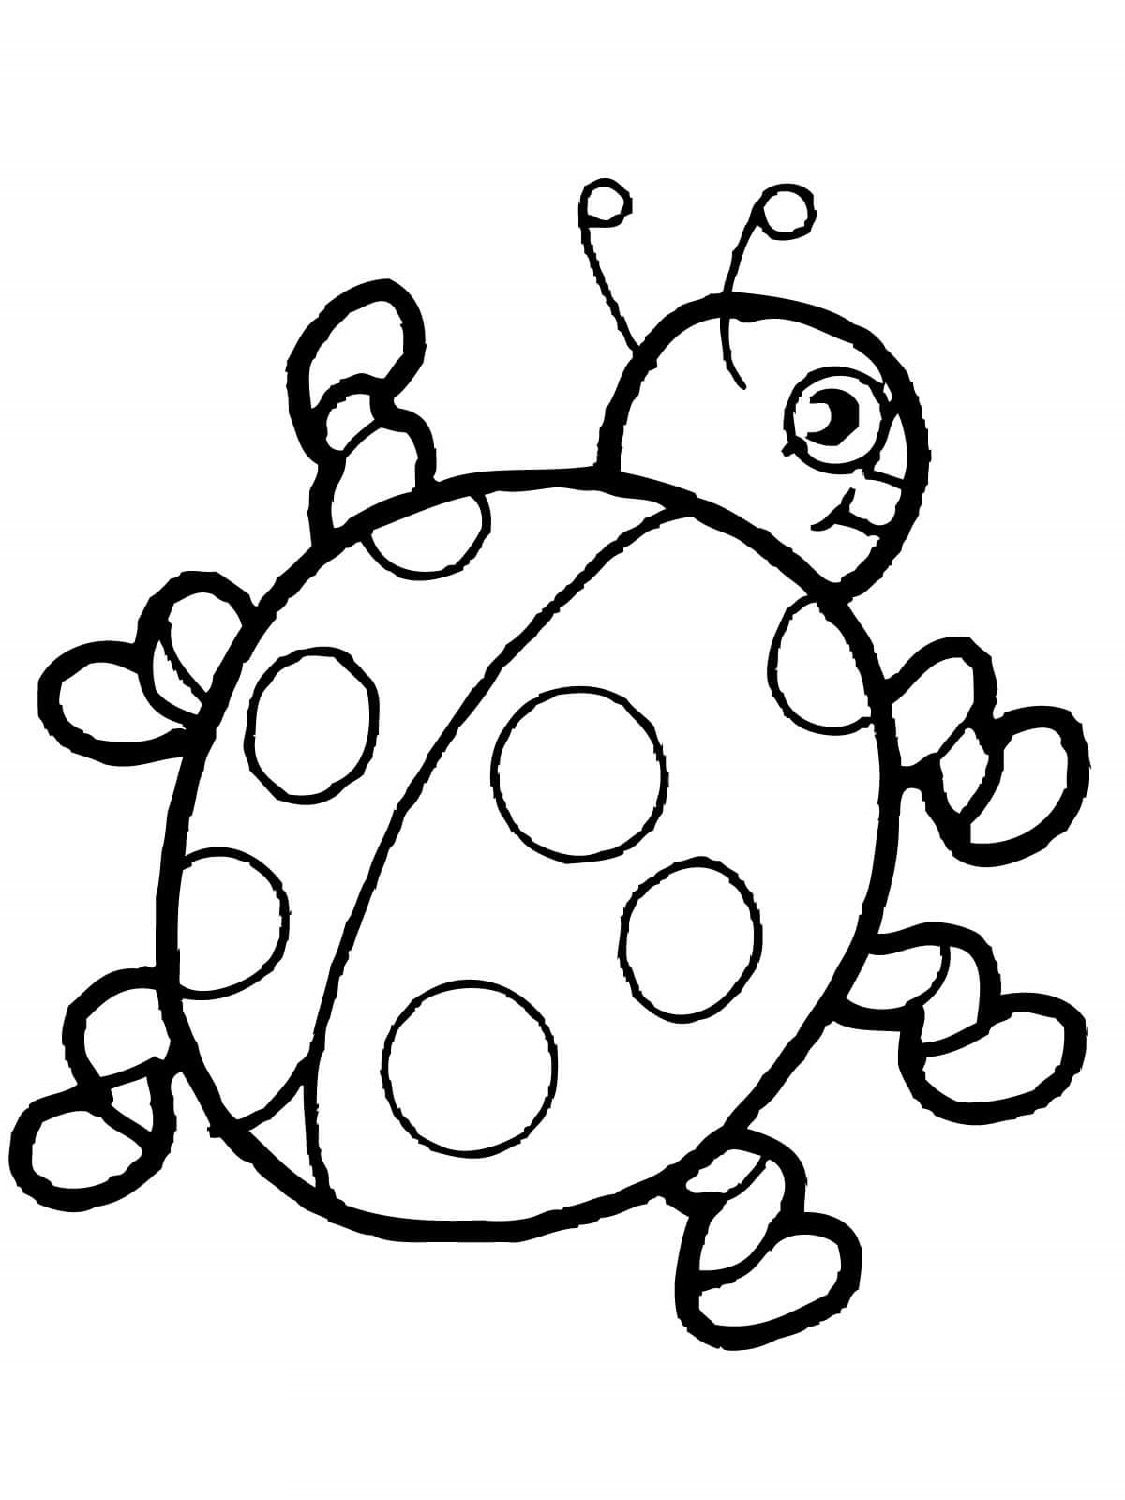 Ladybug Coloring Pages in 2020 Cute coloring pages